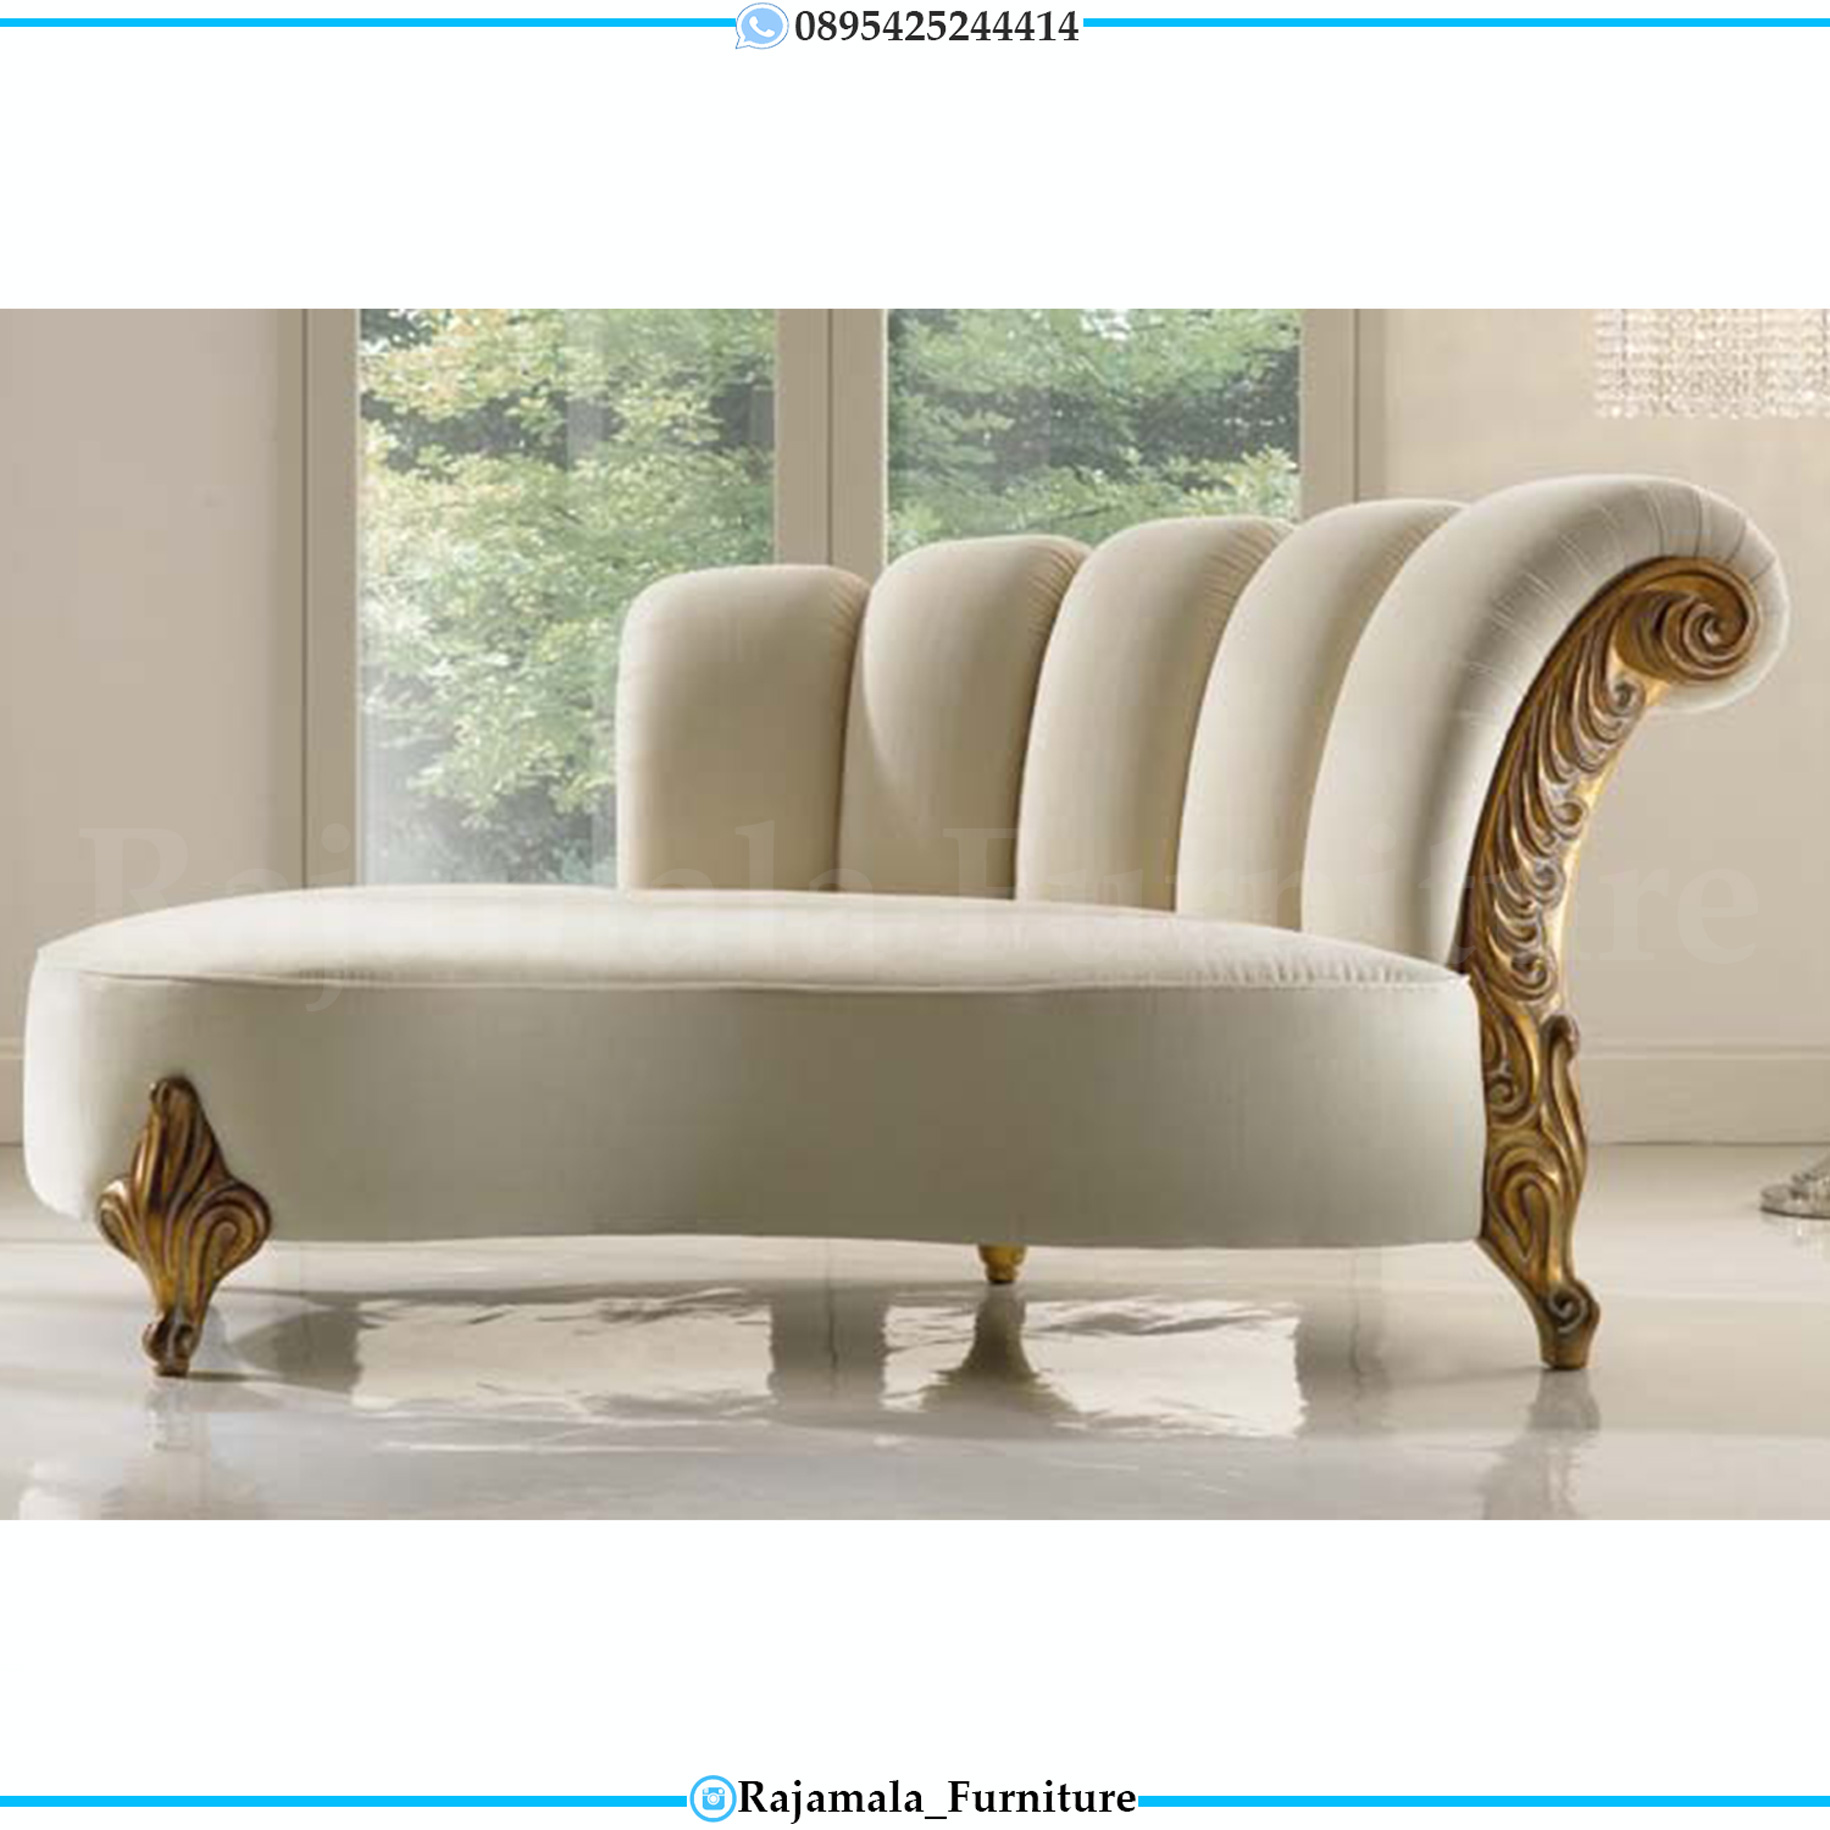 Desain Sofa Malas Mewah Beauty Looking Interior Design Inspiring RM-0028